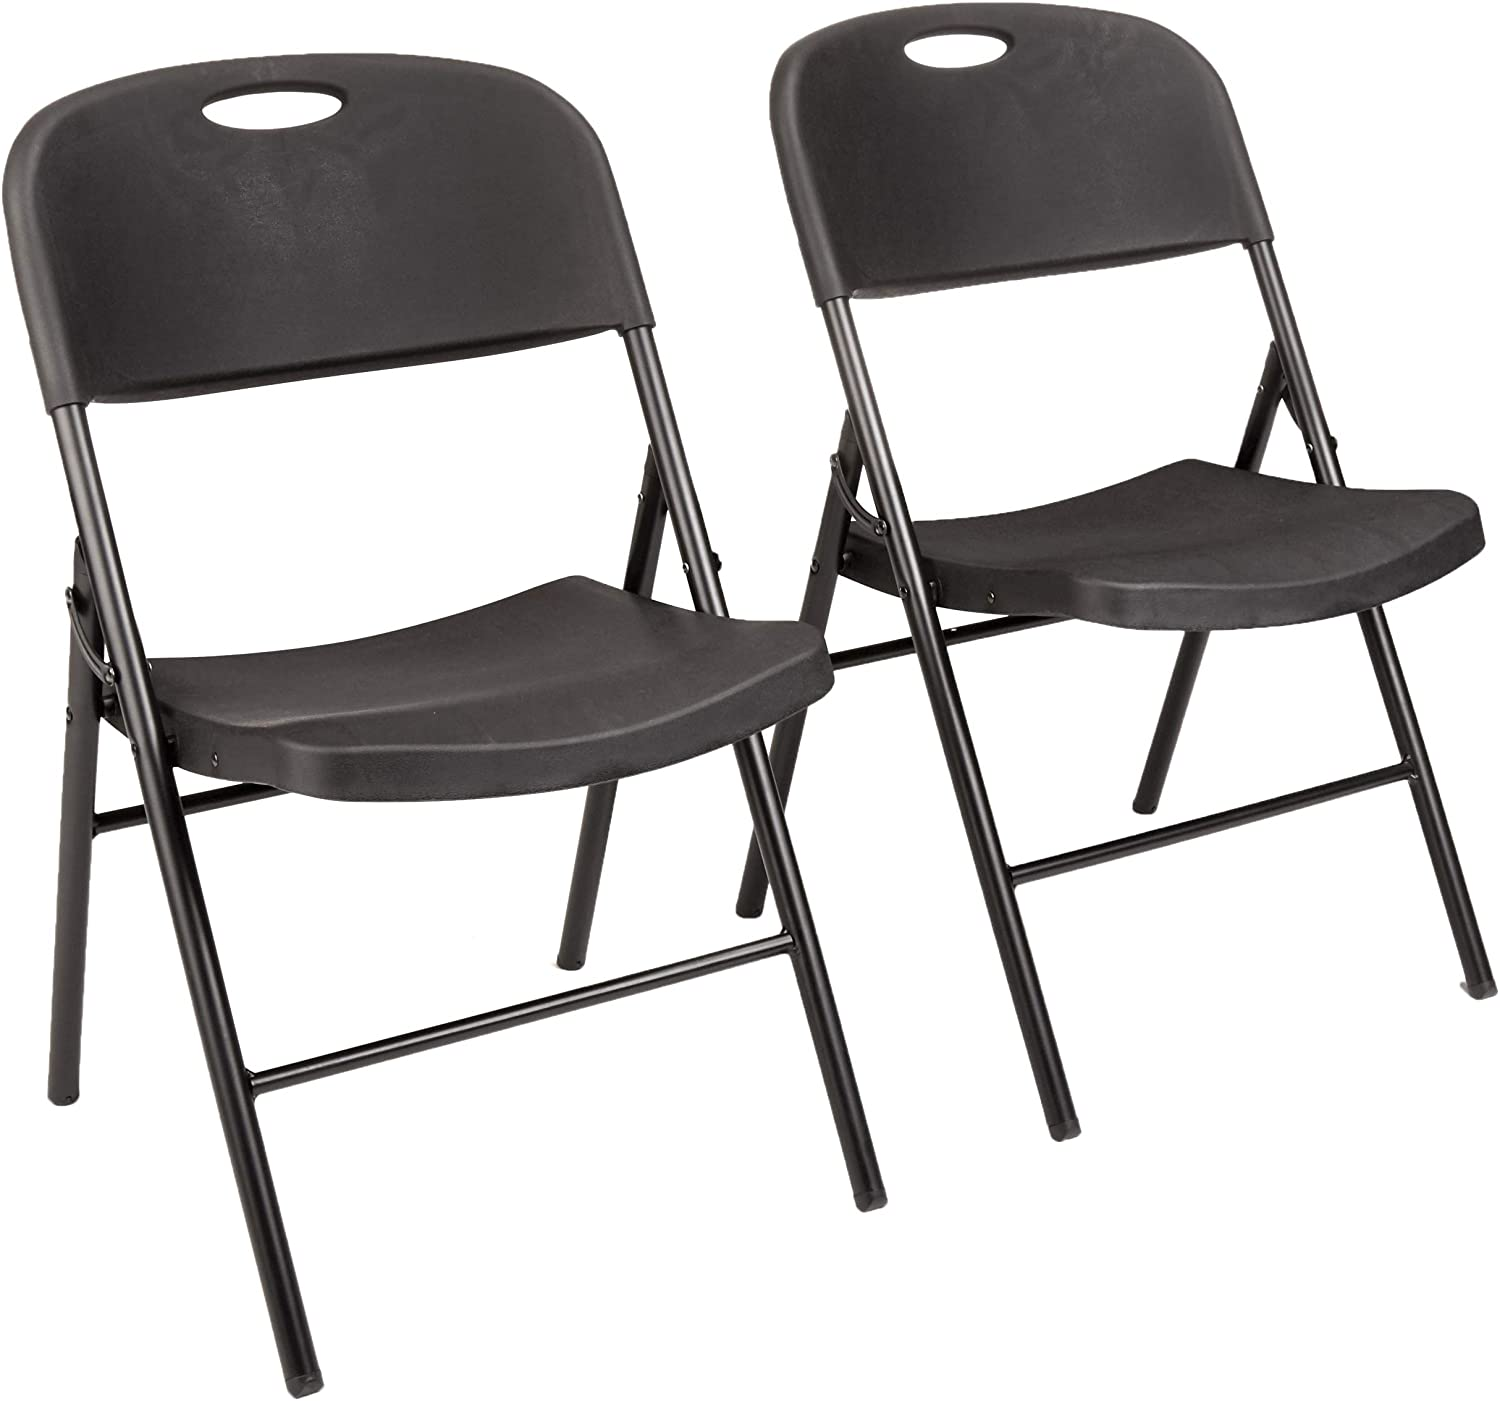 Amazon Com Amazon Basics Folding Plastic Chair 350 Pound Capacity Black 2 Pack Furniture Decor